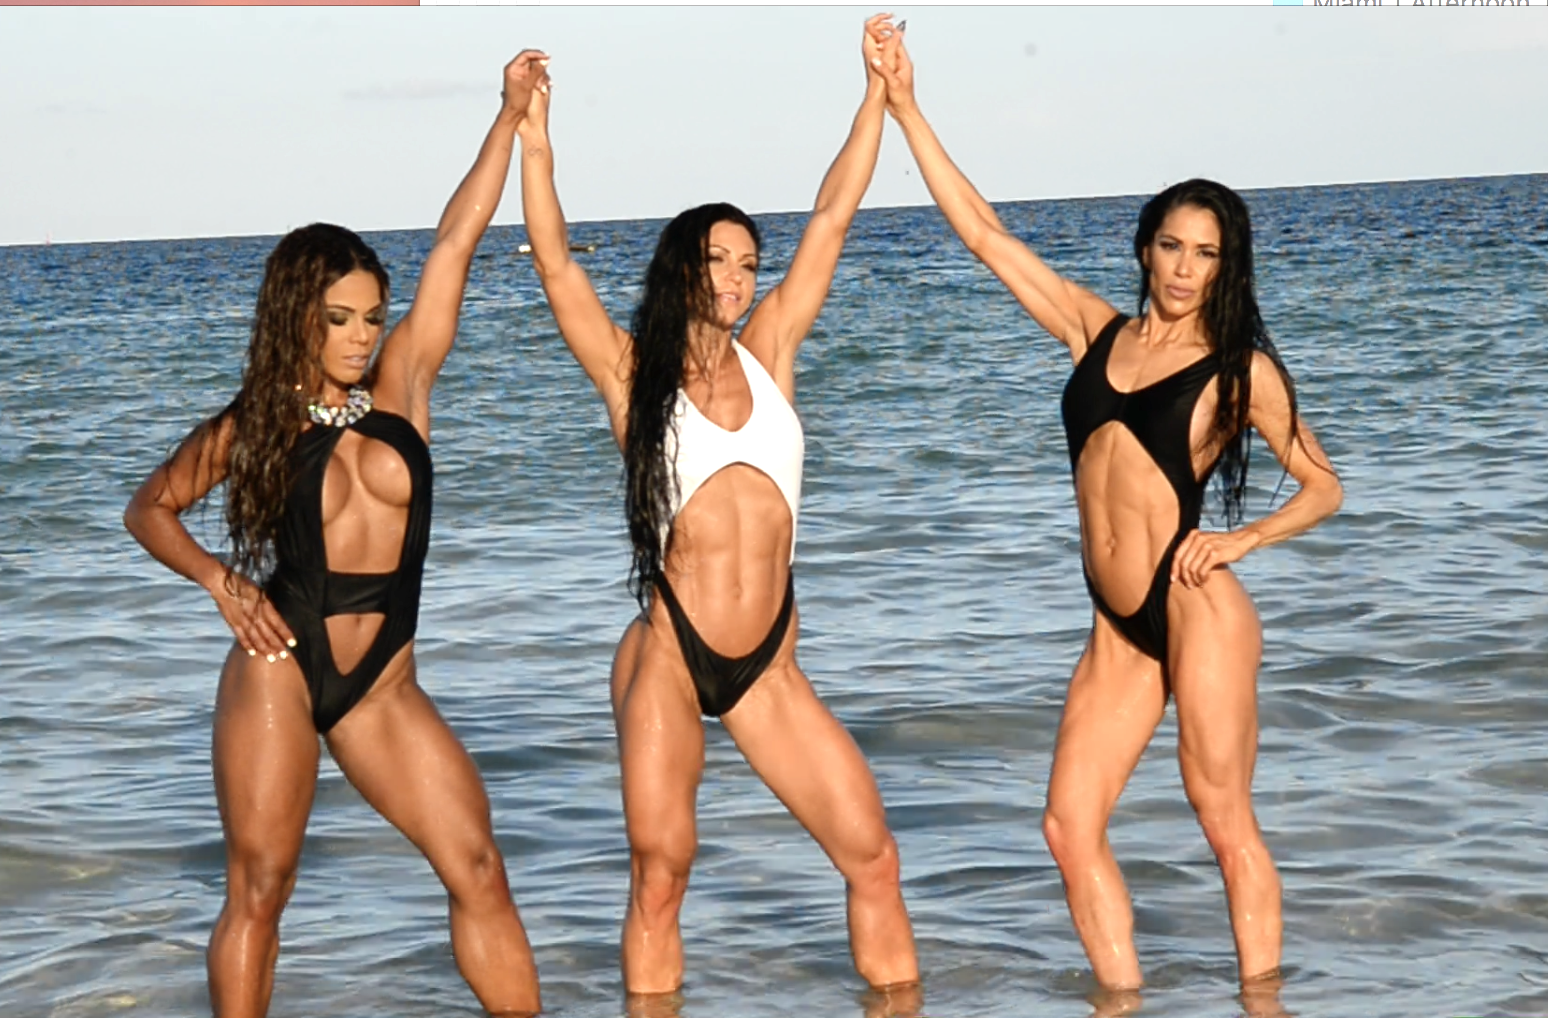 2017 J.M. Manion South Beach, Miami Shoot Video: IFBB Bikini Pro's Anita Herbert, Yarishna Ayala, Jen Ronzitti